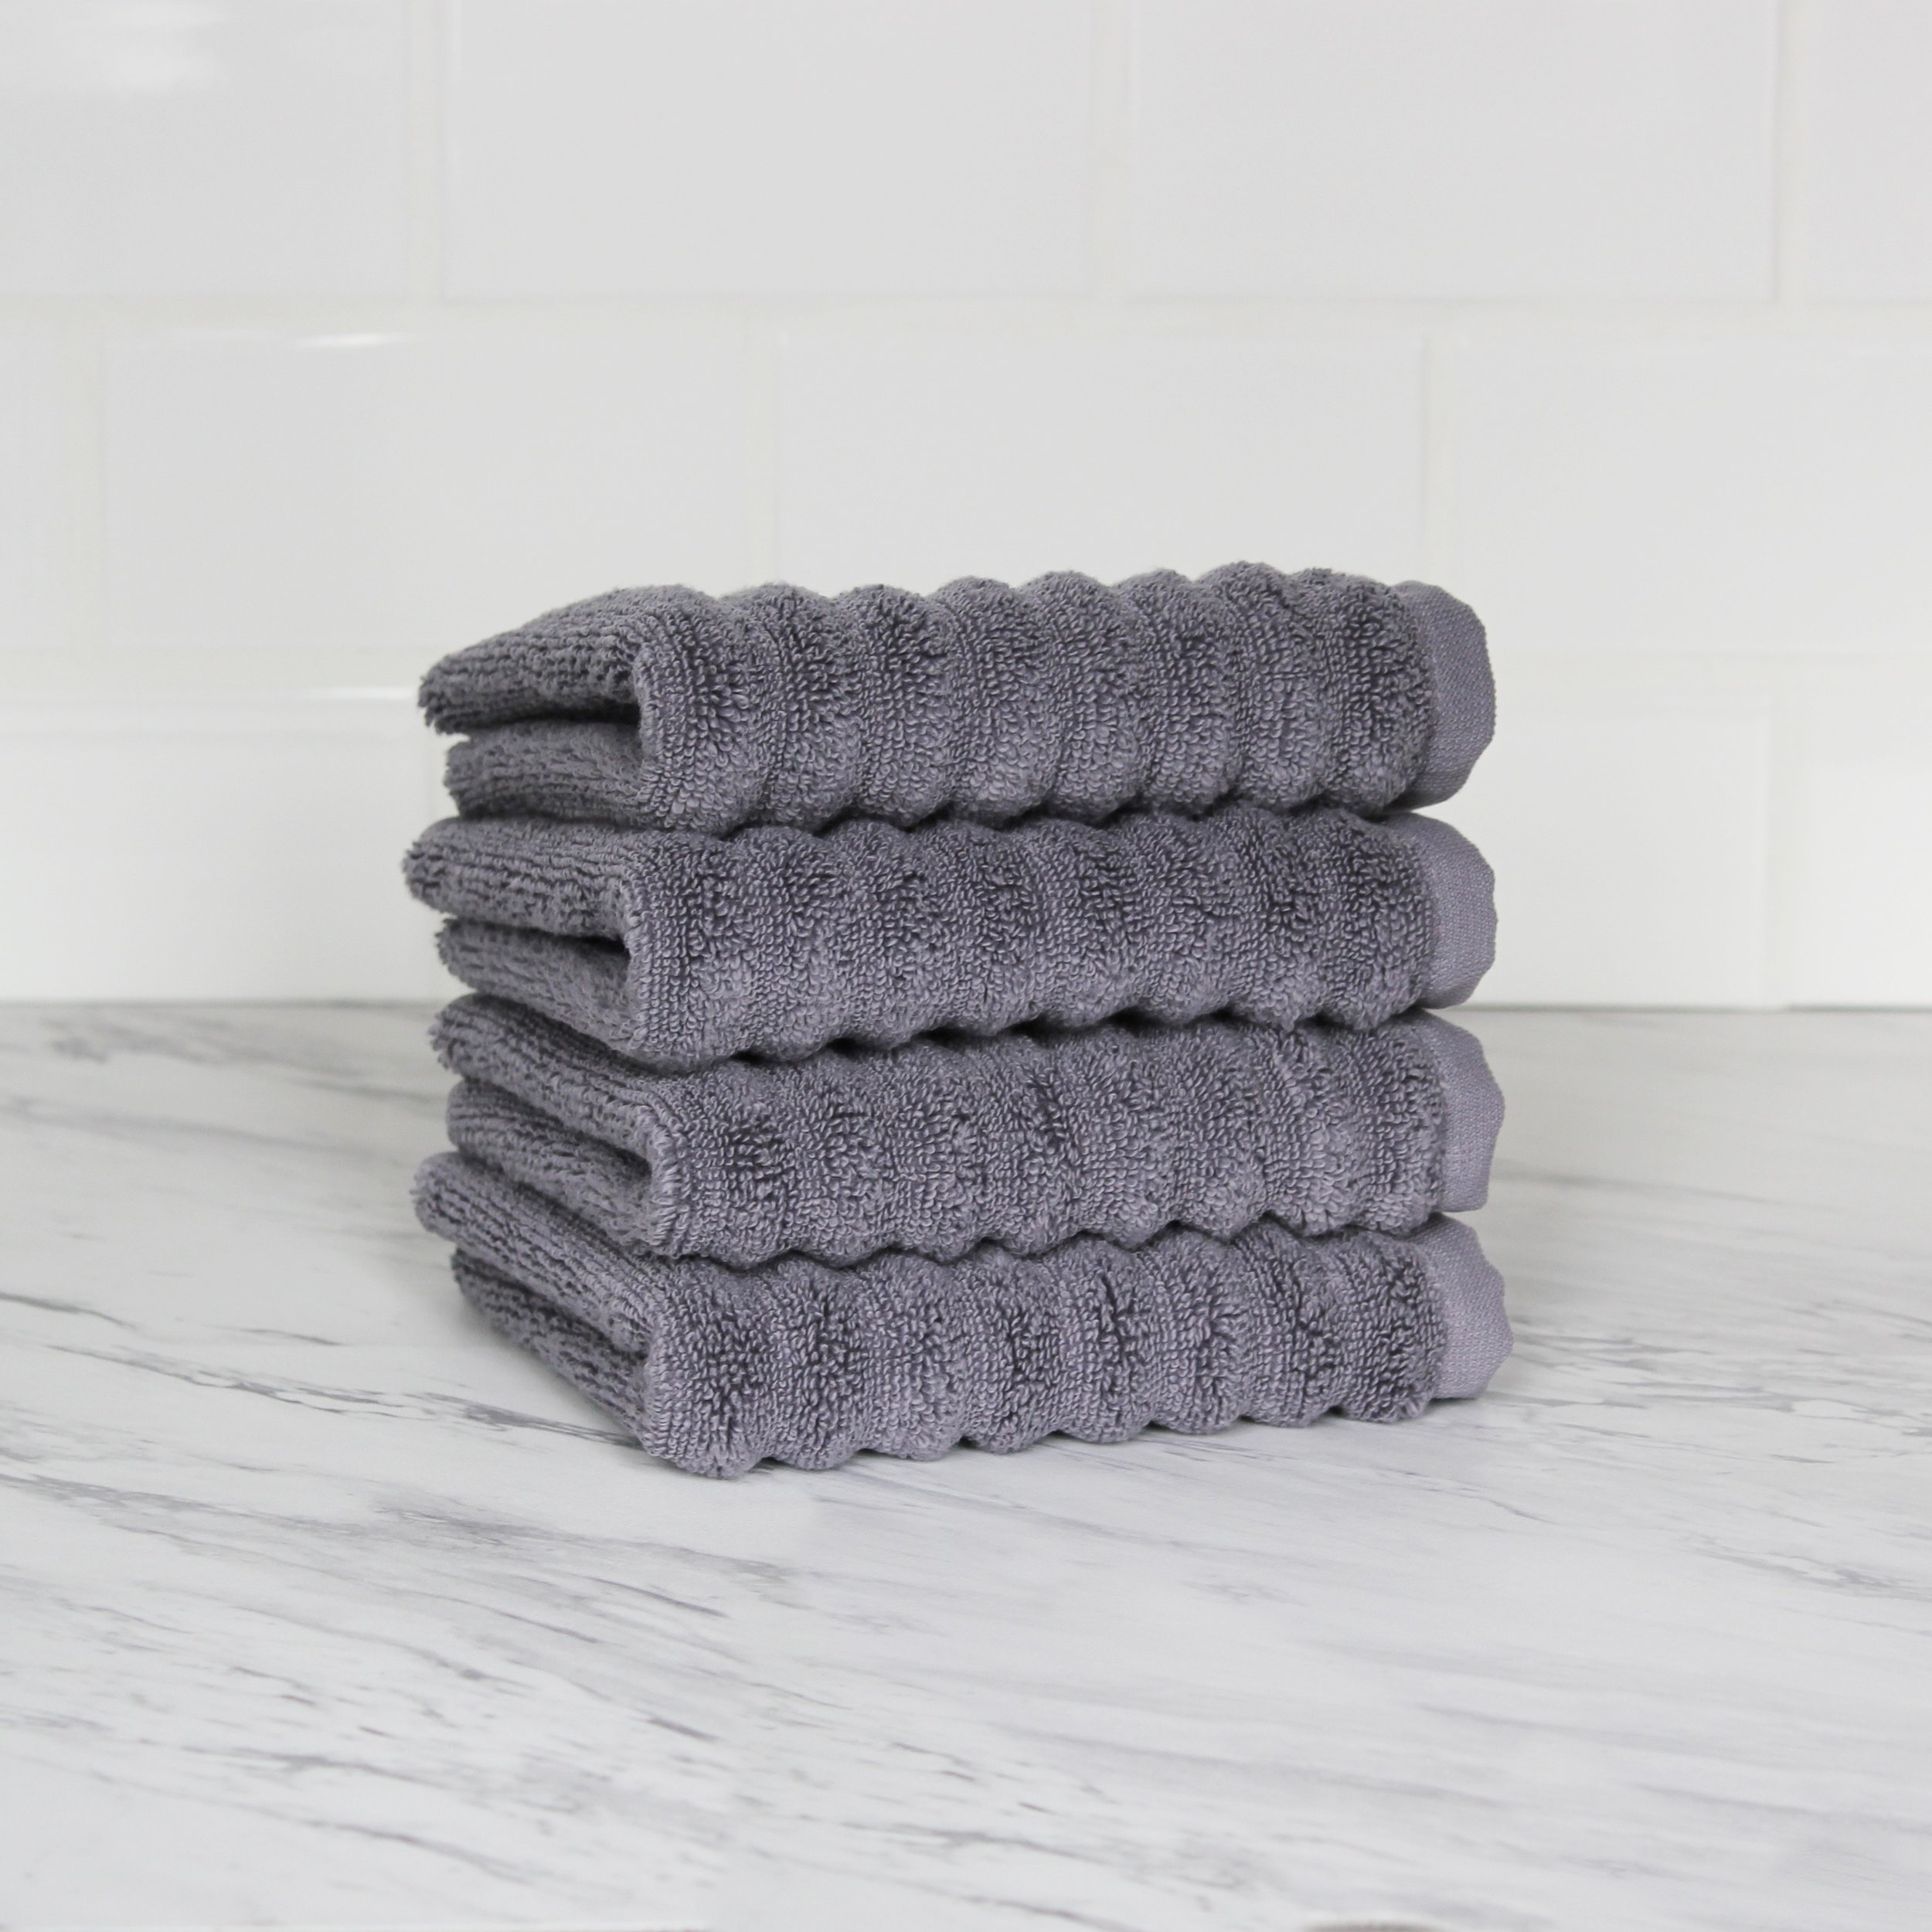 216758_100_turkish_zero_twist_cotton_4pc_wash_towel_set_anthrocite_grey.jpg